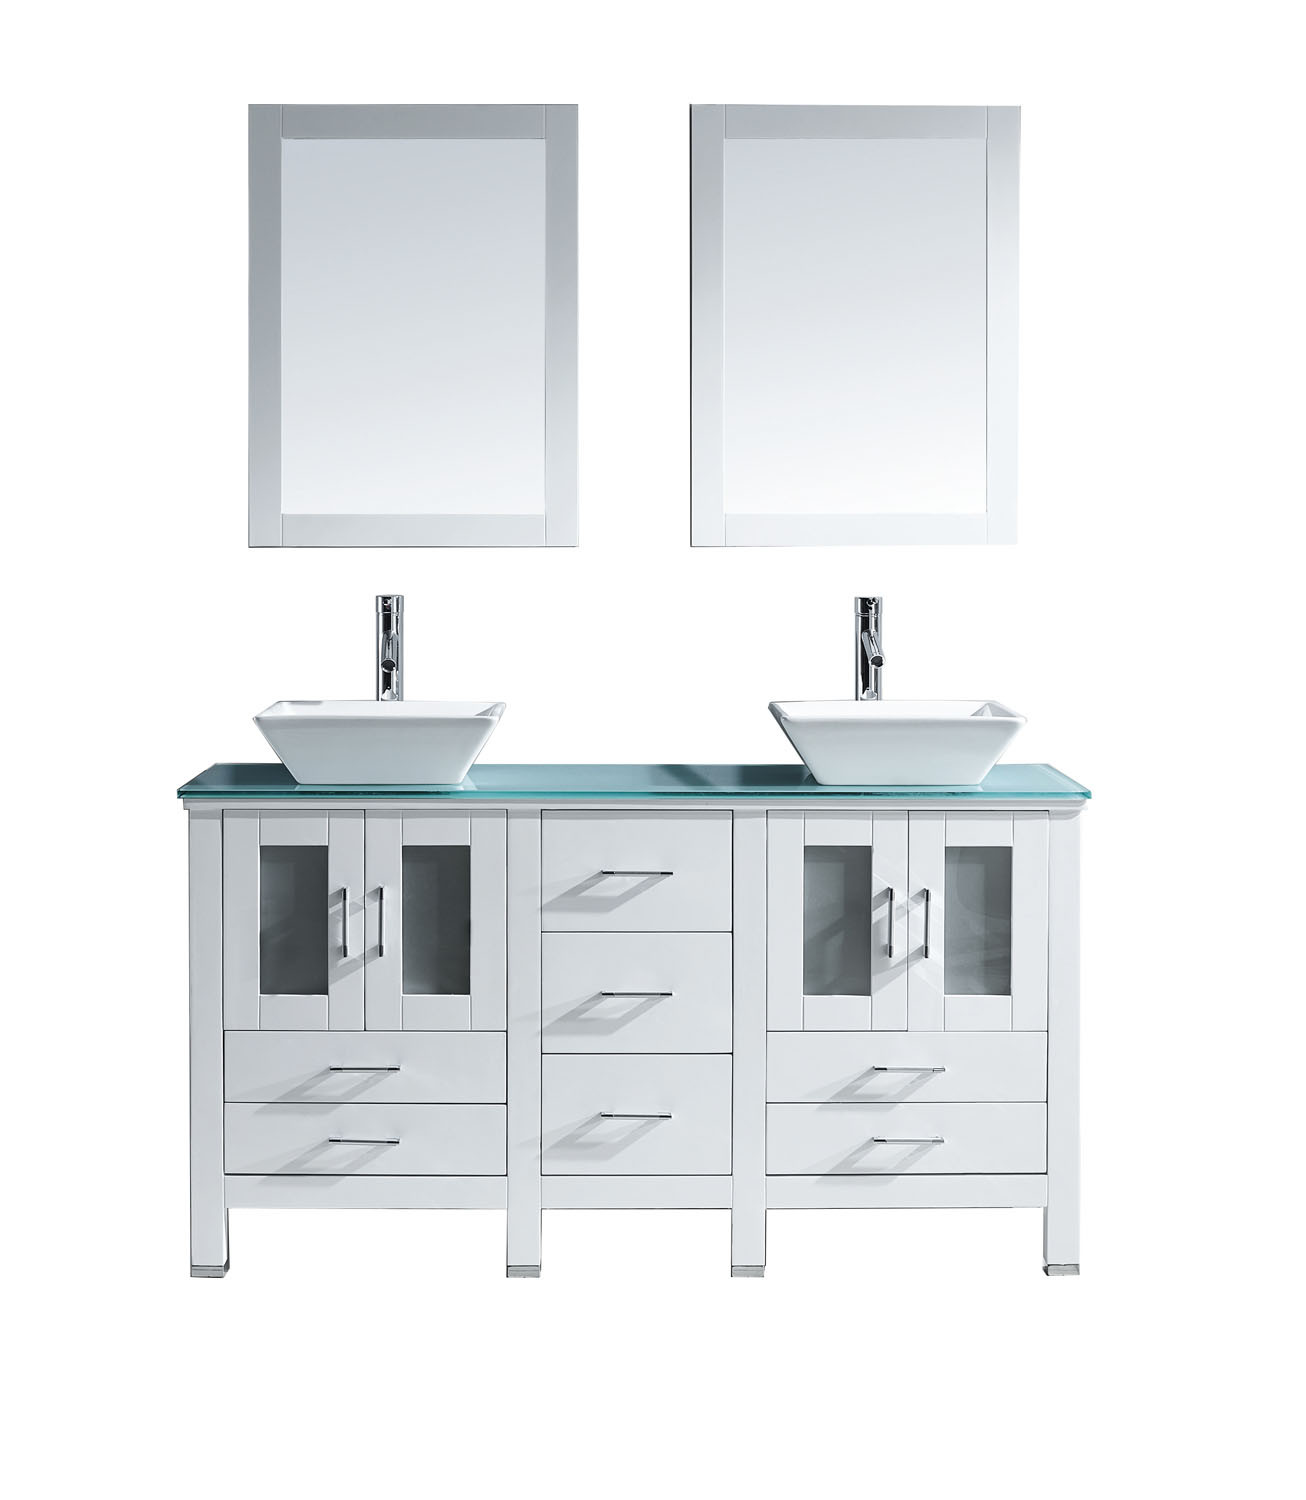 Virtu MD-4305-G-WH Bradford 60 Inch Double Bathroom Vanity Set In White With Tempered Glass Top